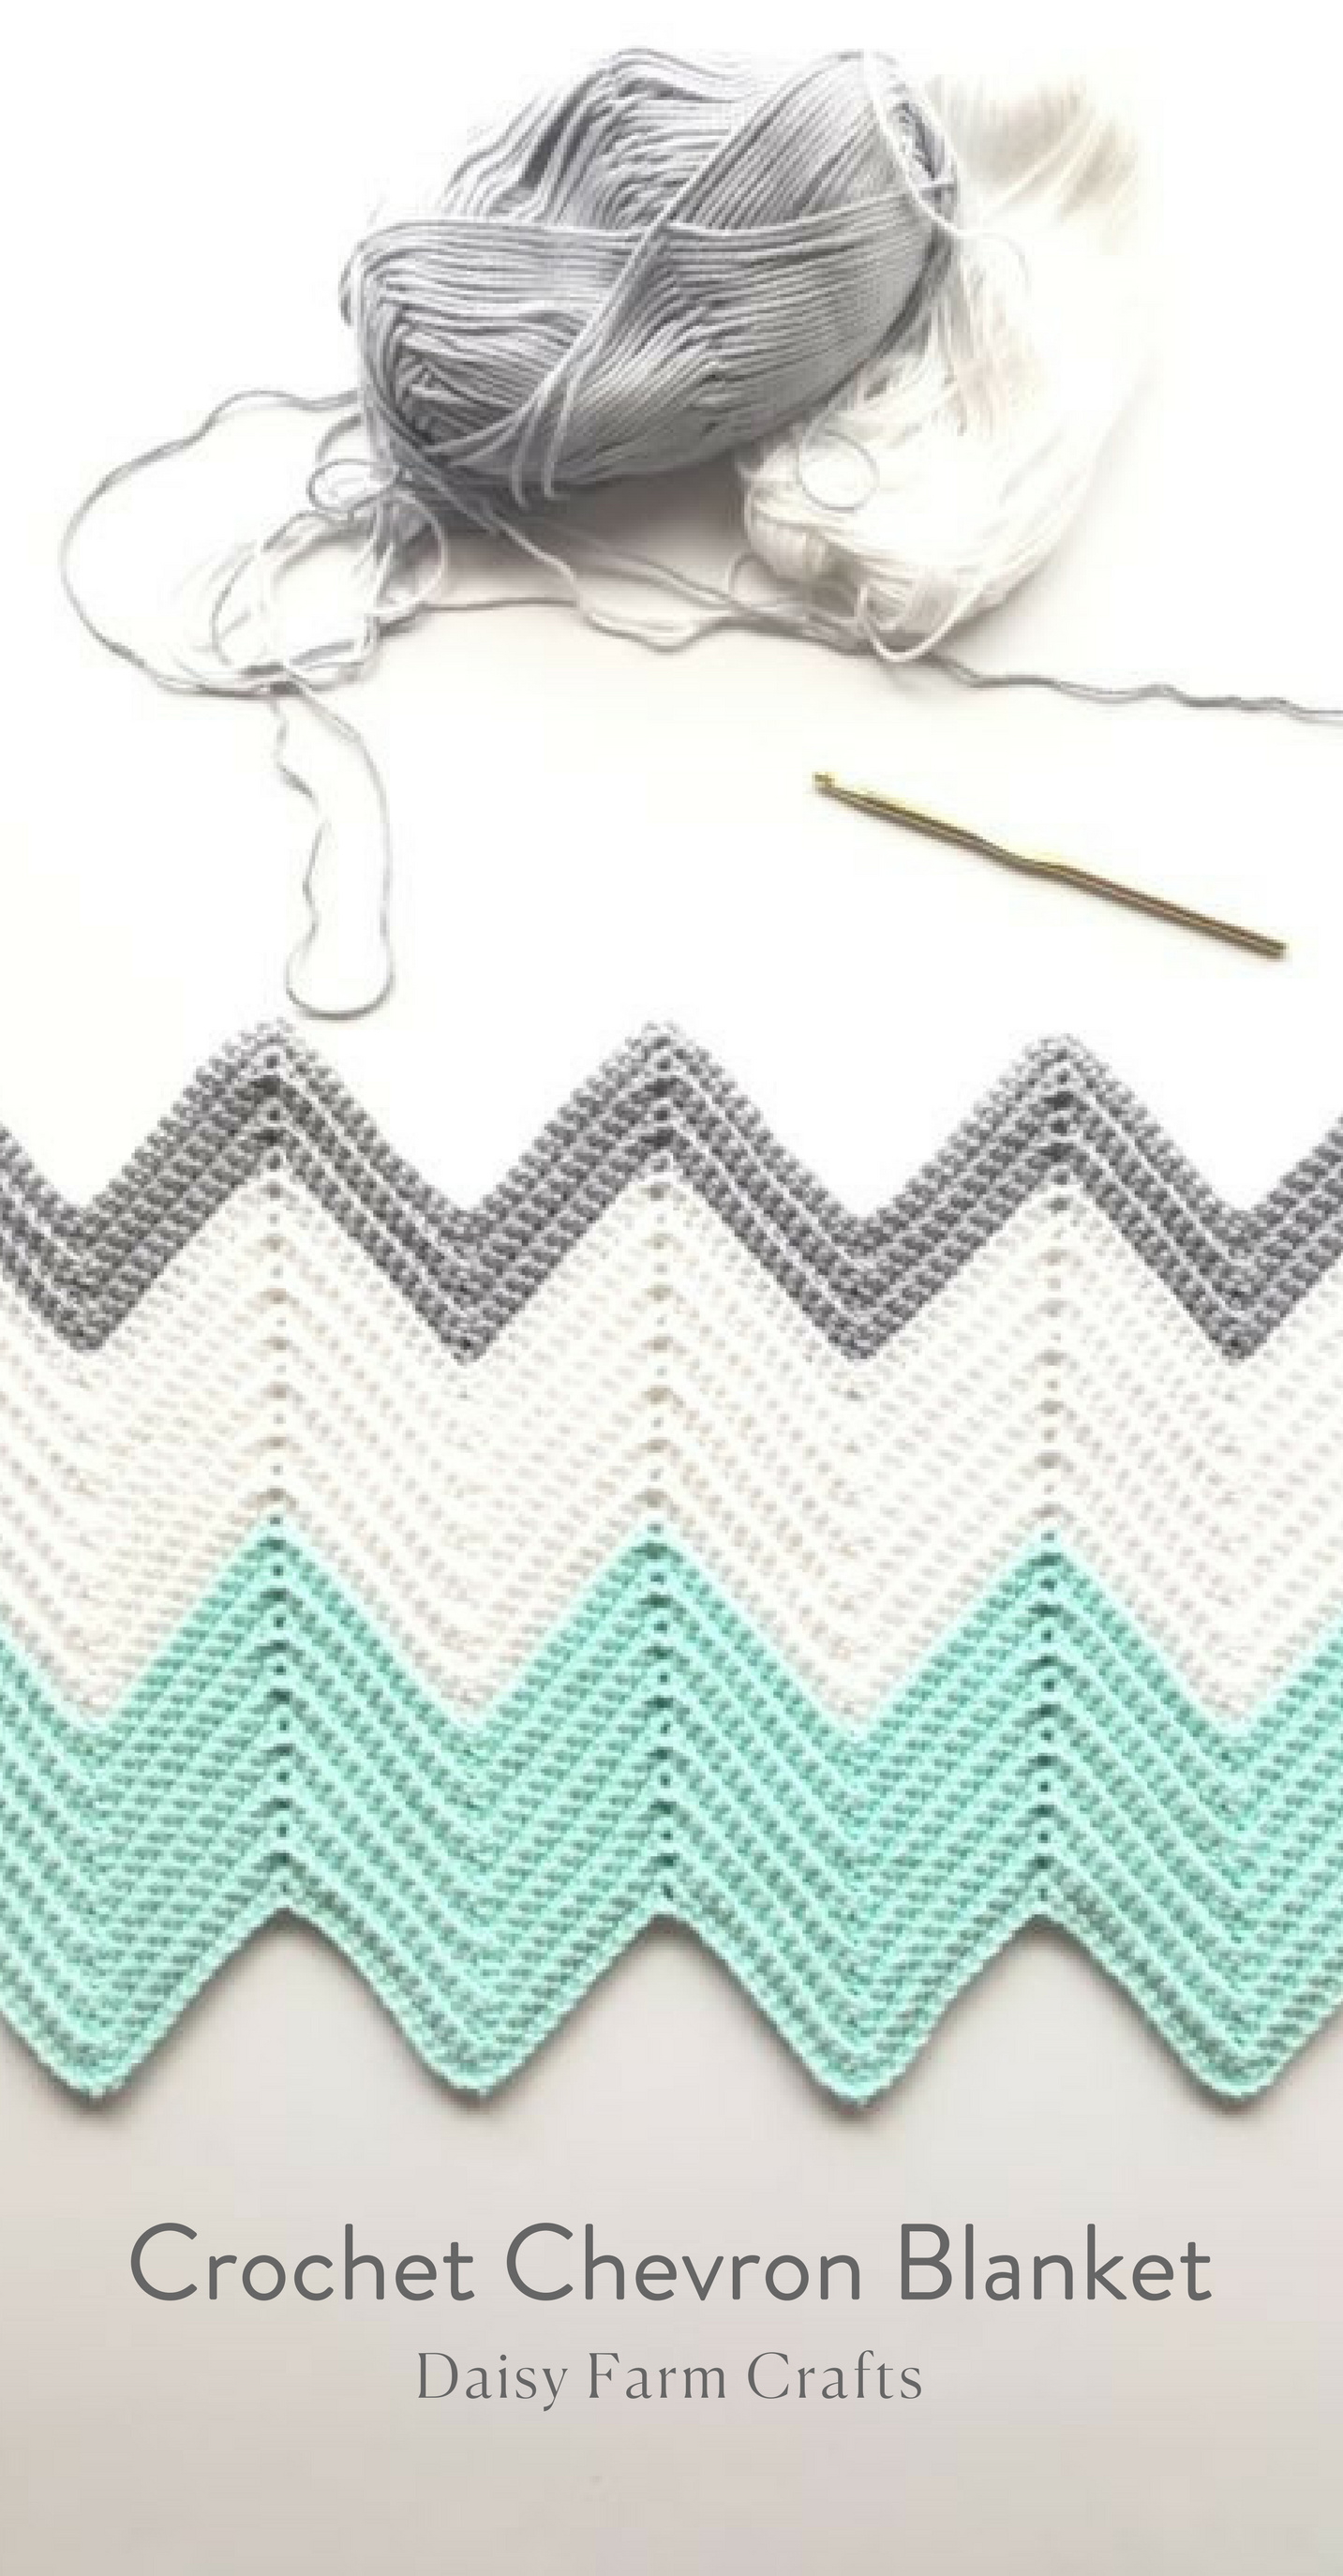 Free Pattern - Crochet Chevron Blanket | Crotchety | Pinterest ...